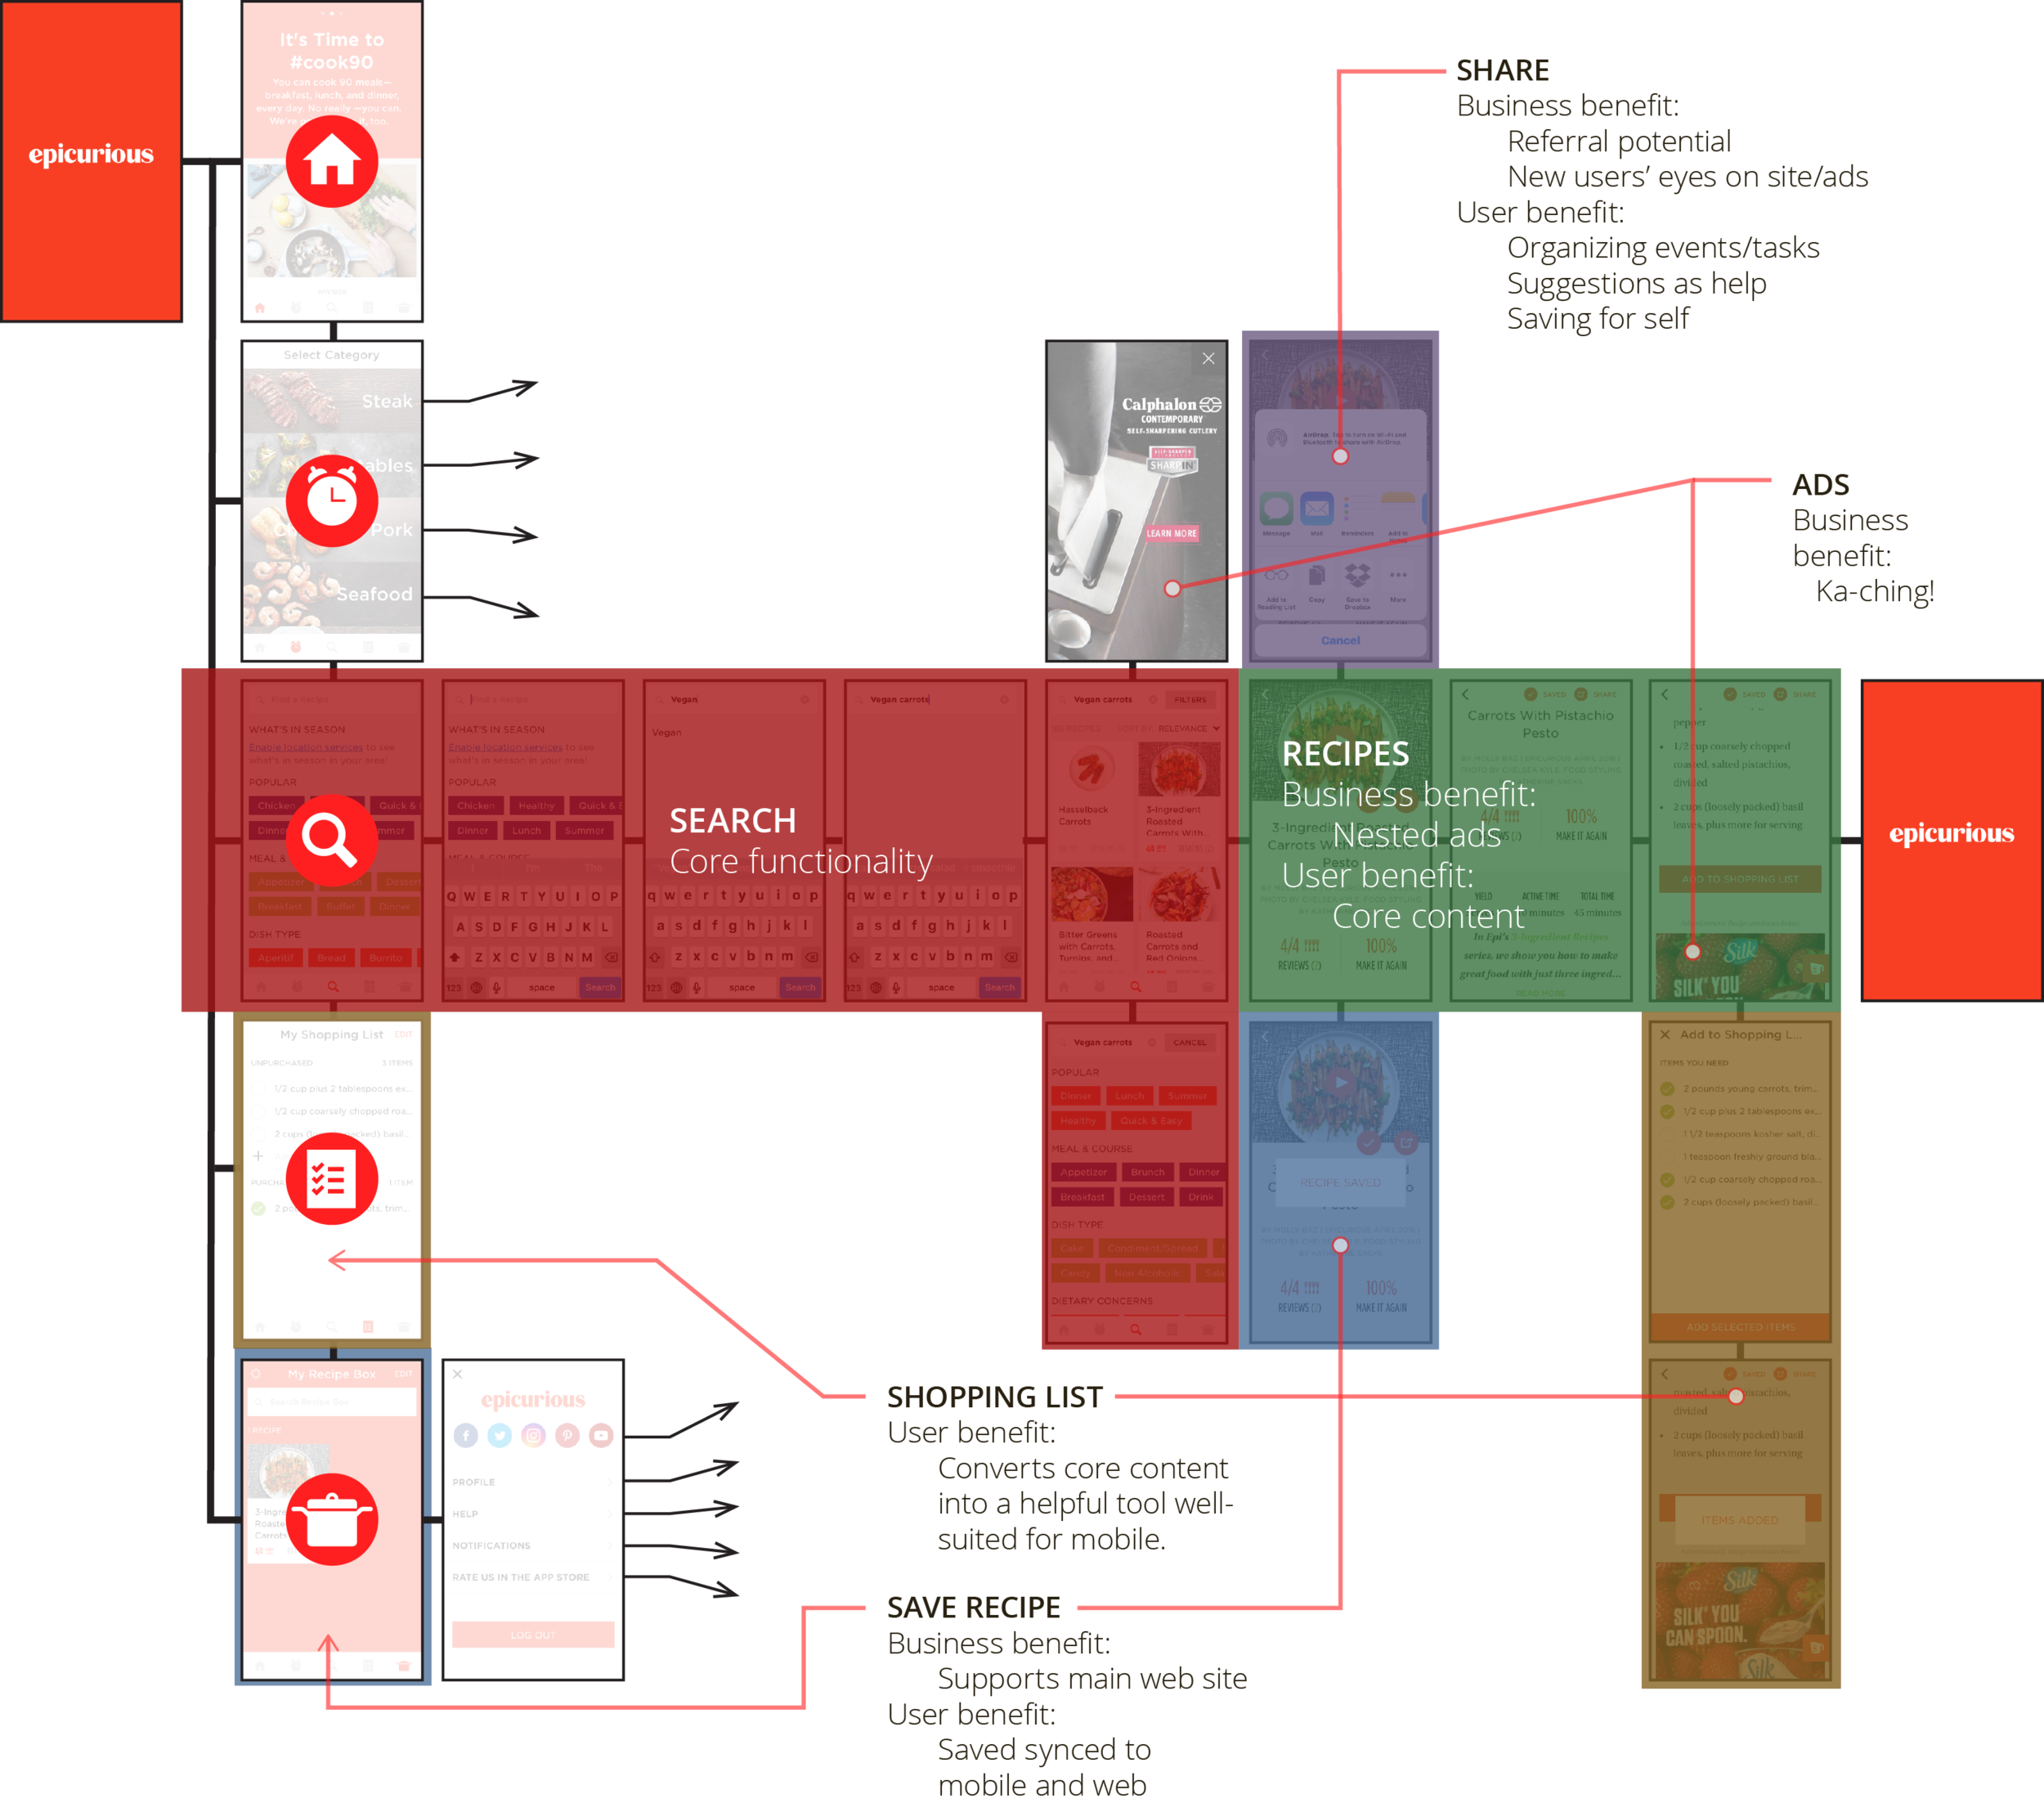 Screen flow of the Epicurious app